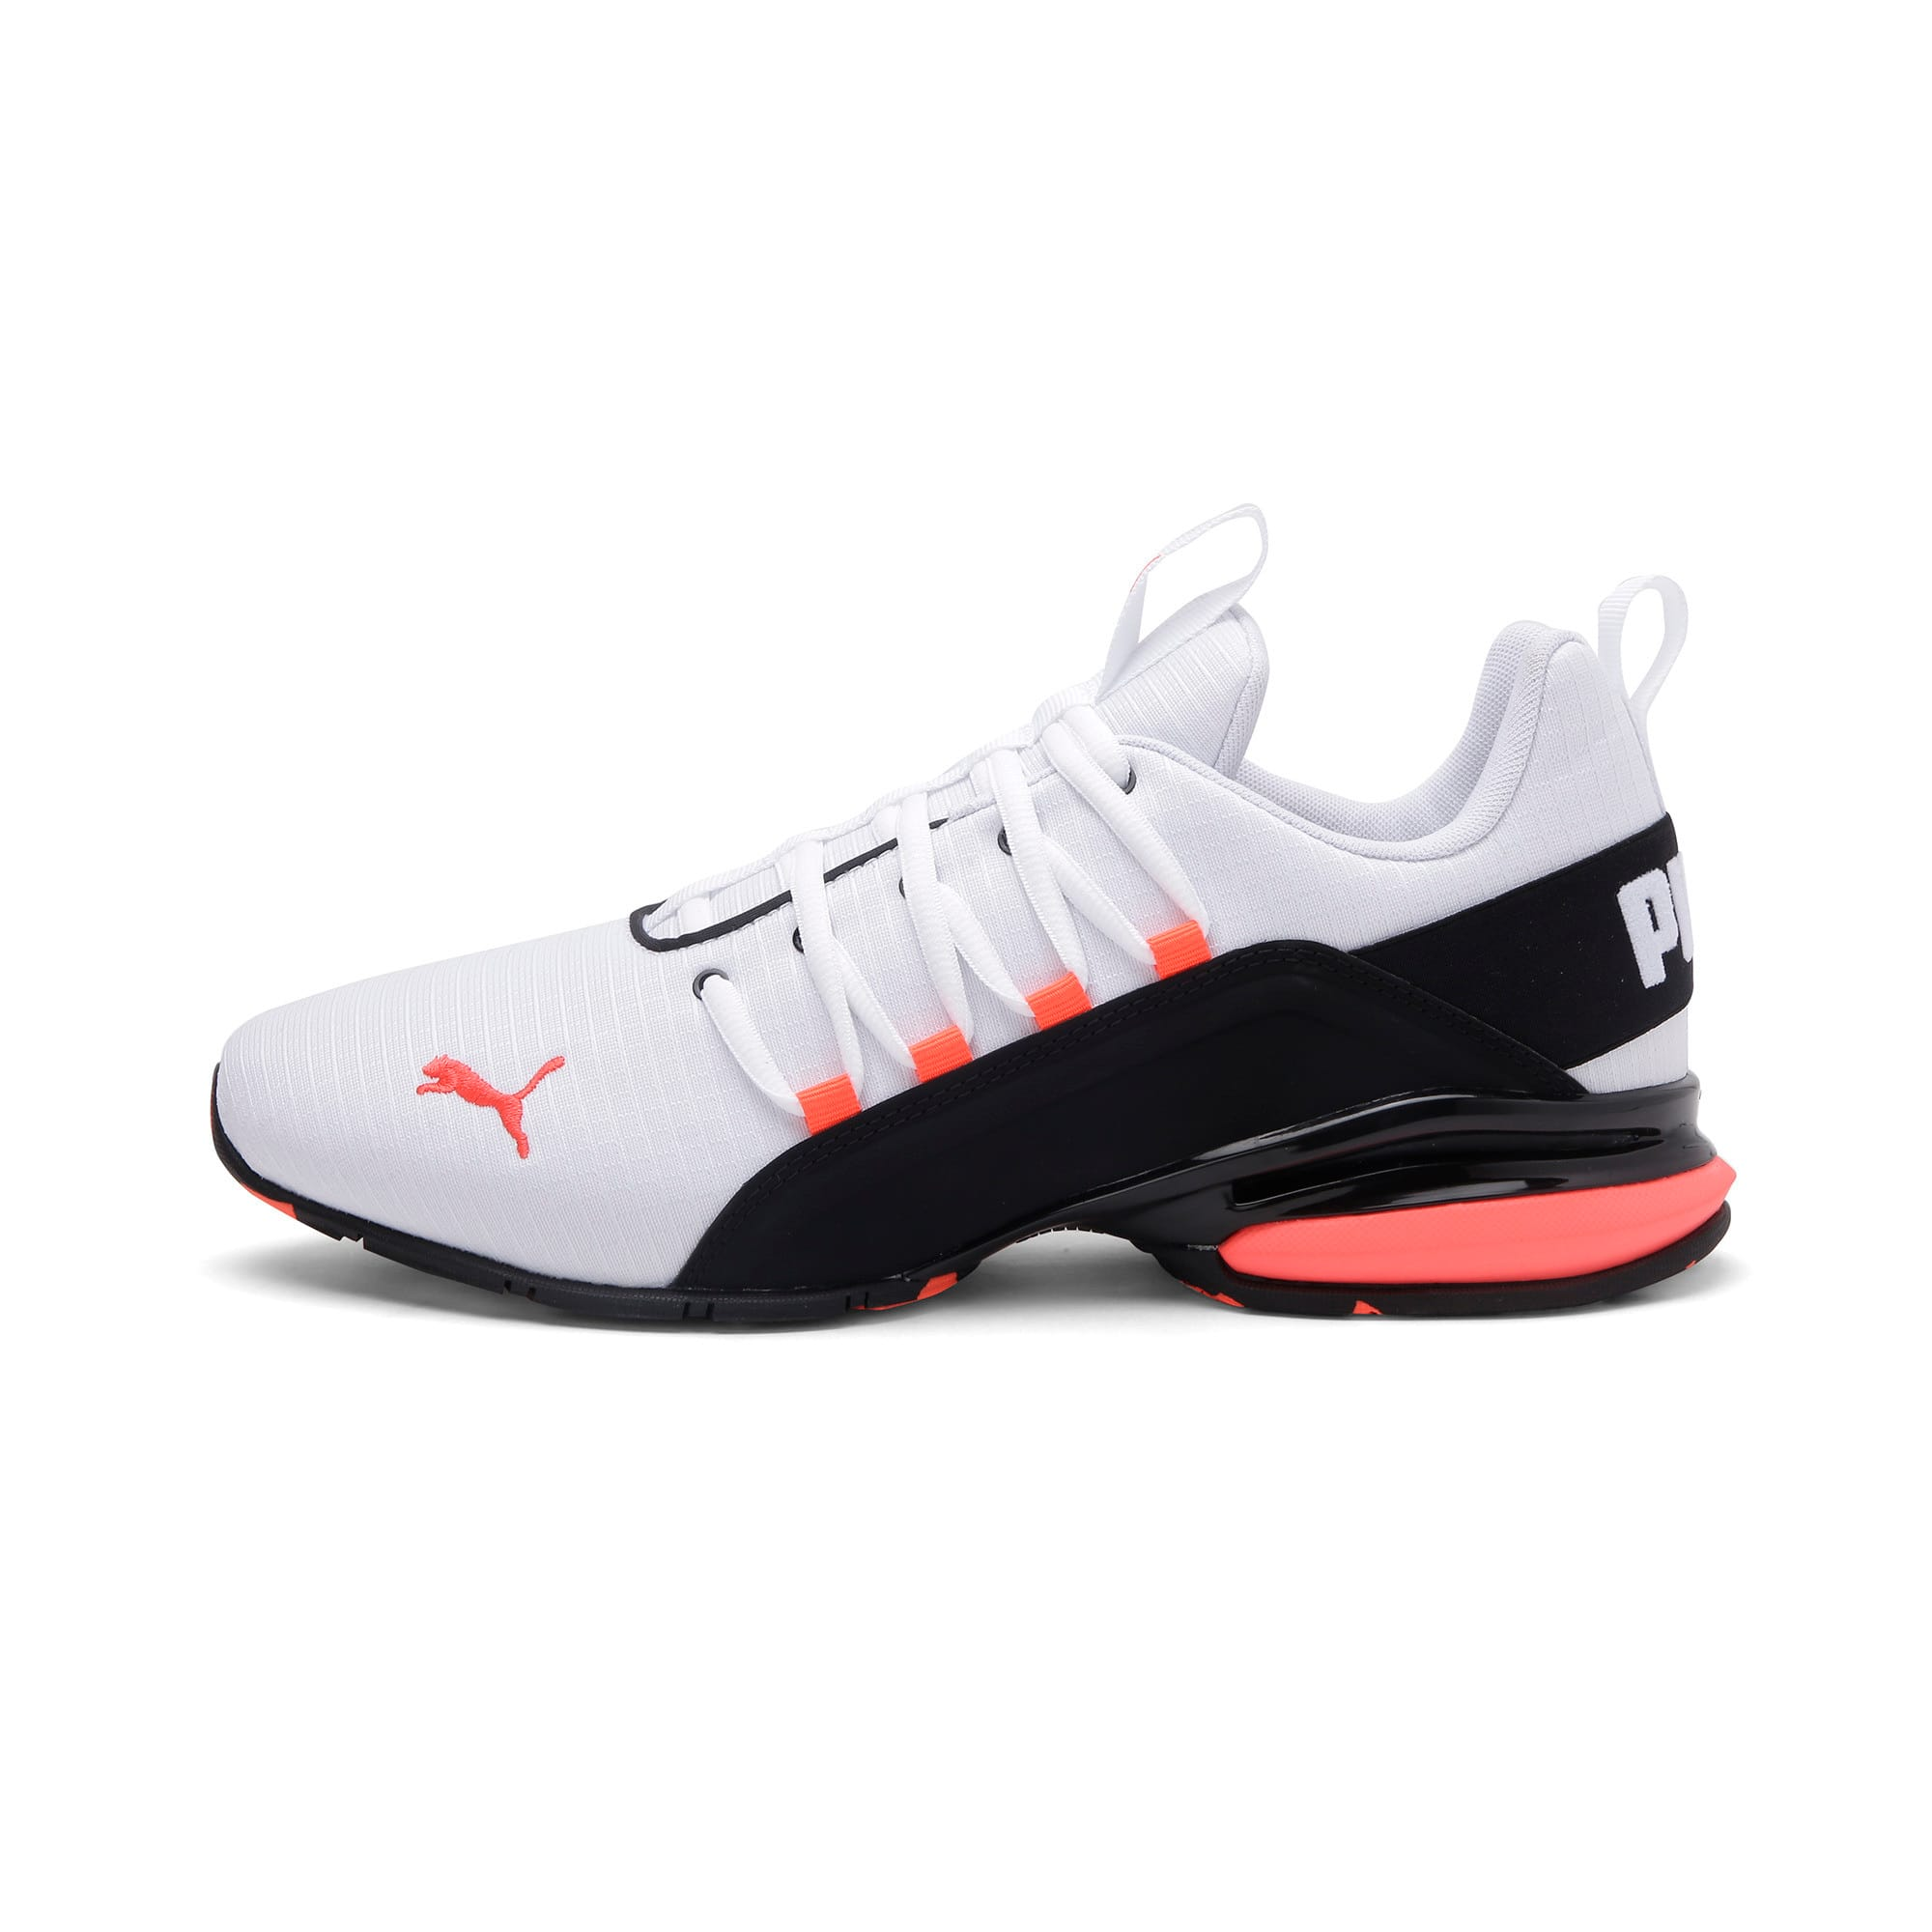 Thumbnail 1 of Axelion Rip Men's Running Shoes, White-Black-Nrgy Red, medium-IND